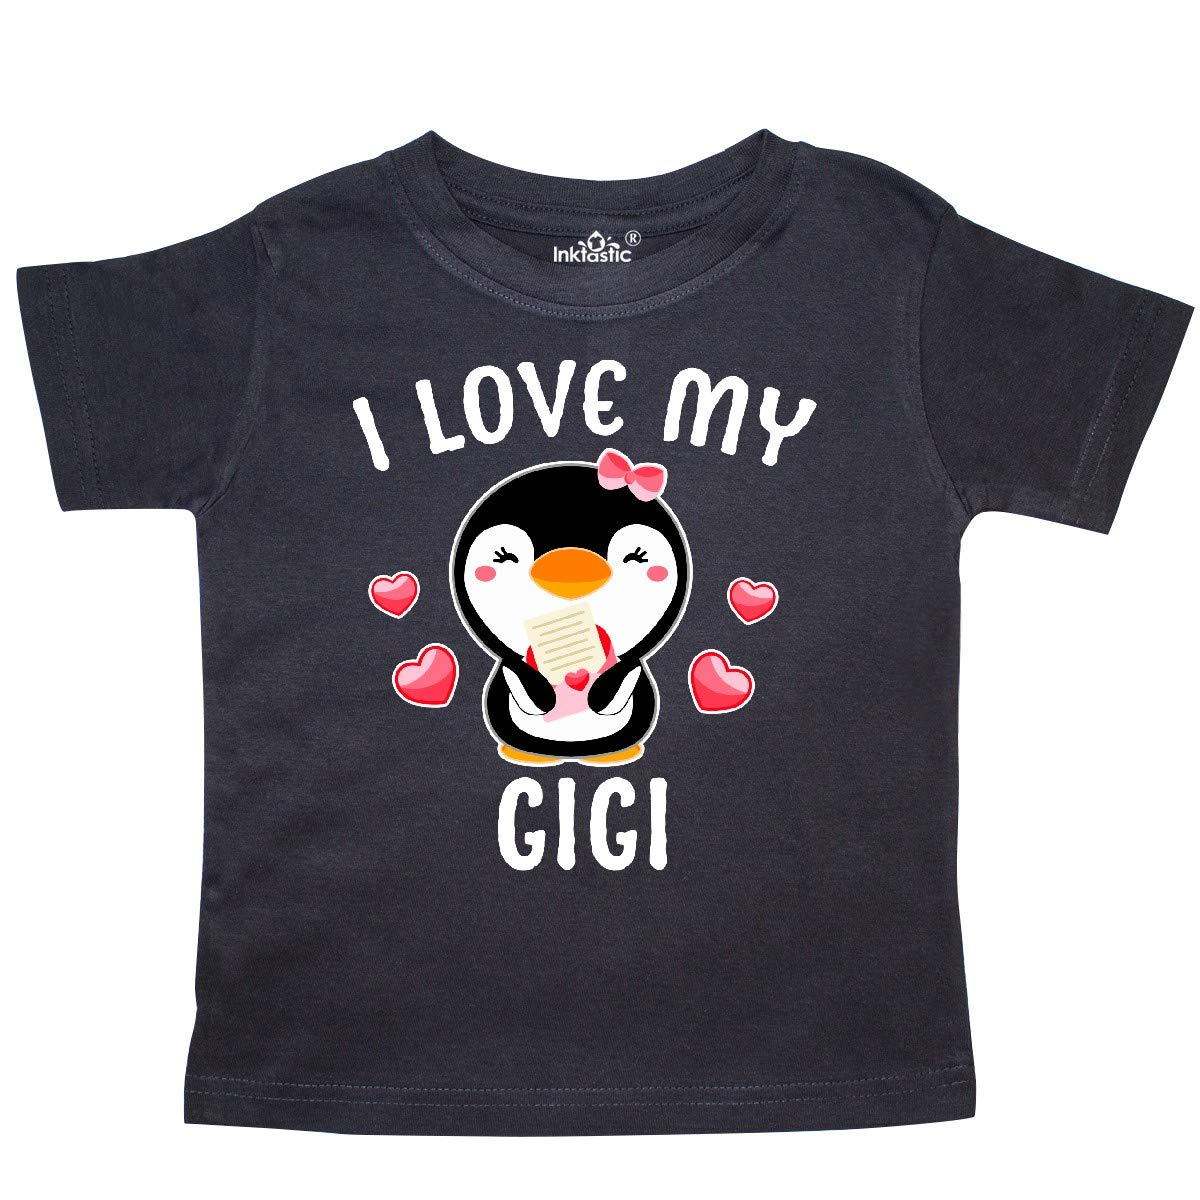 inktastic I Love My Gigi with Cute Penguin and Hearts Toddler T-Shirt